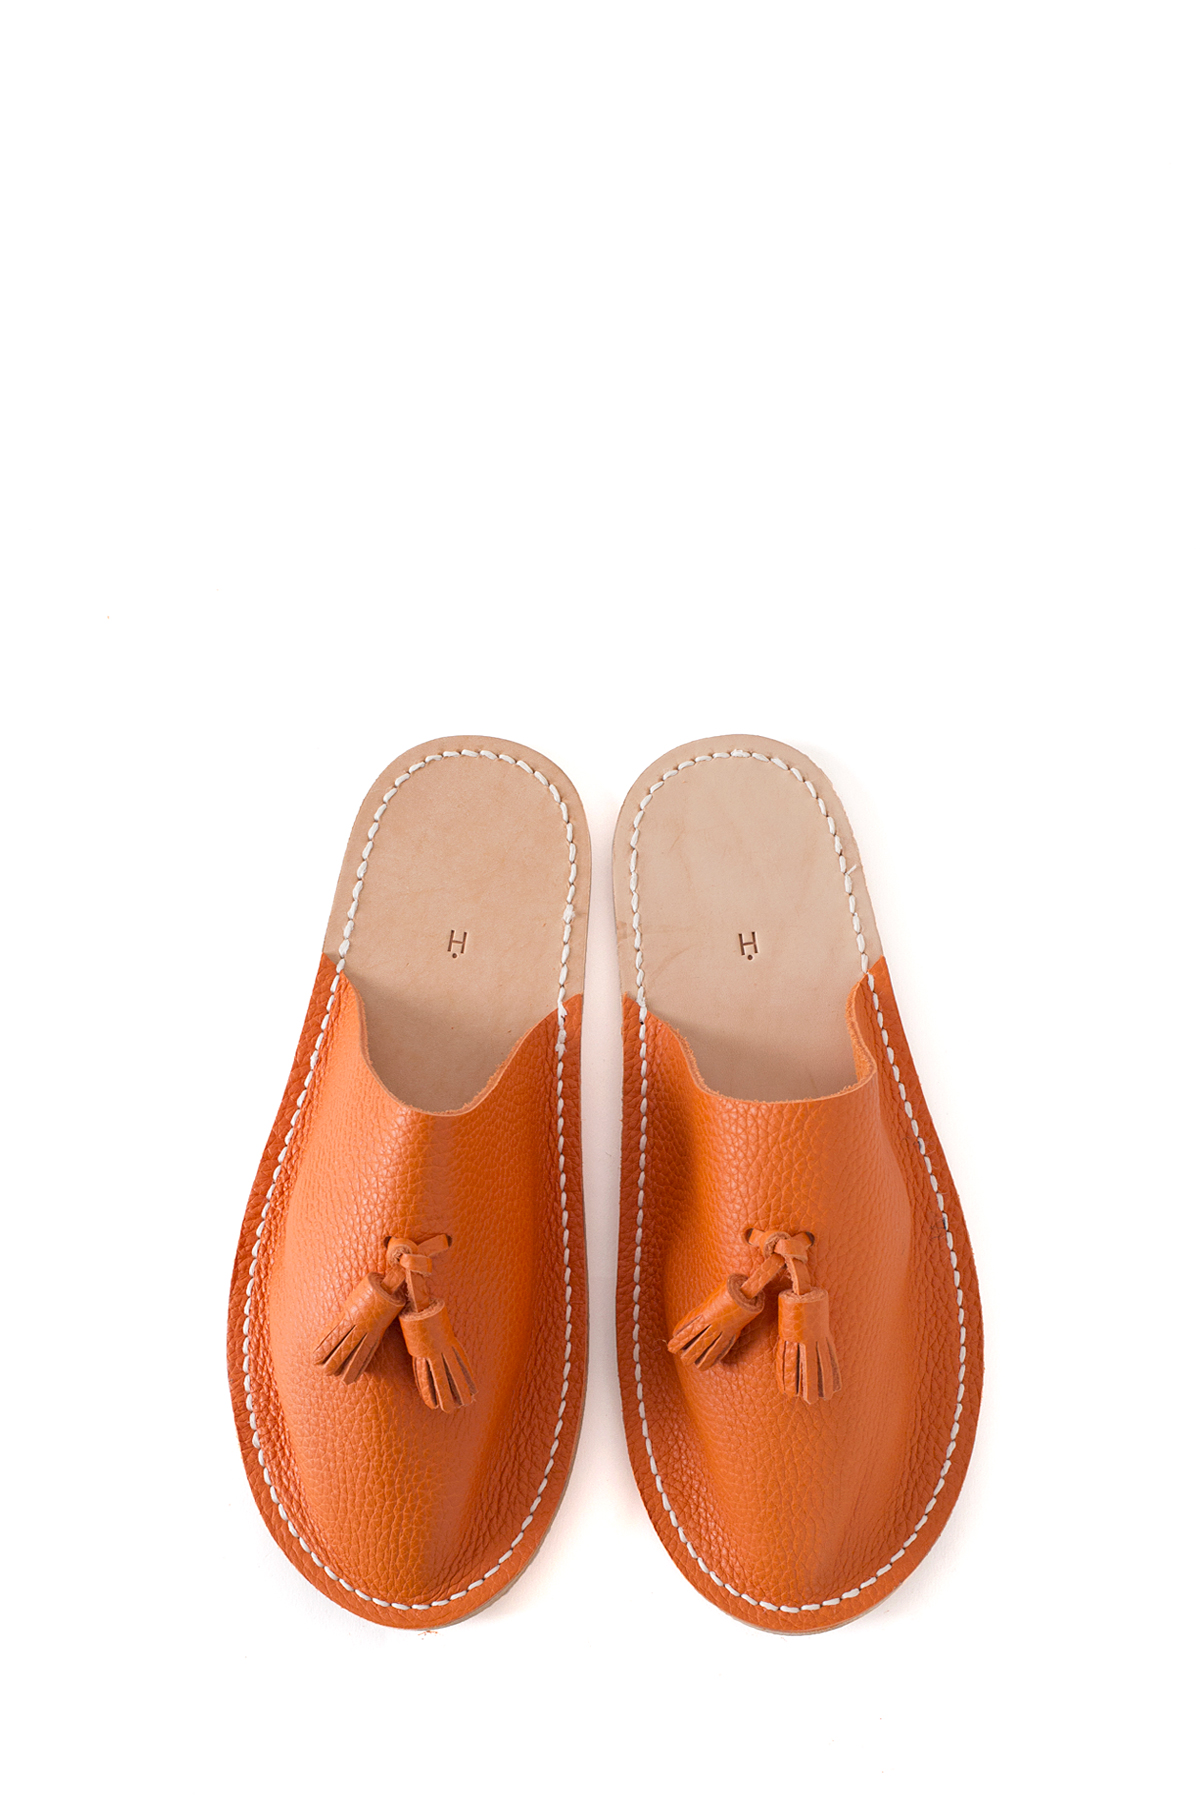 Hender Scheme : Leather Slipper (Orange)